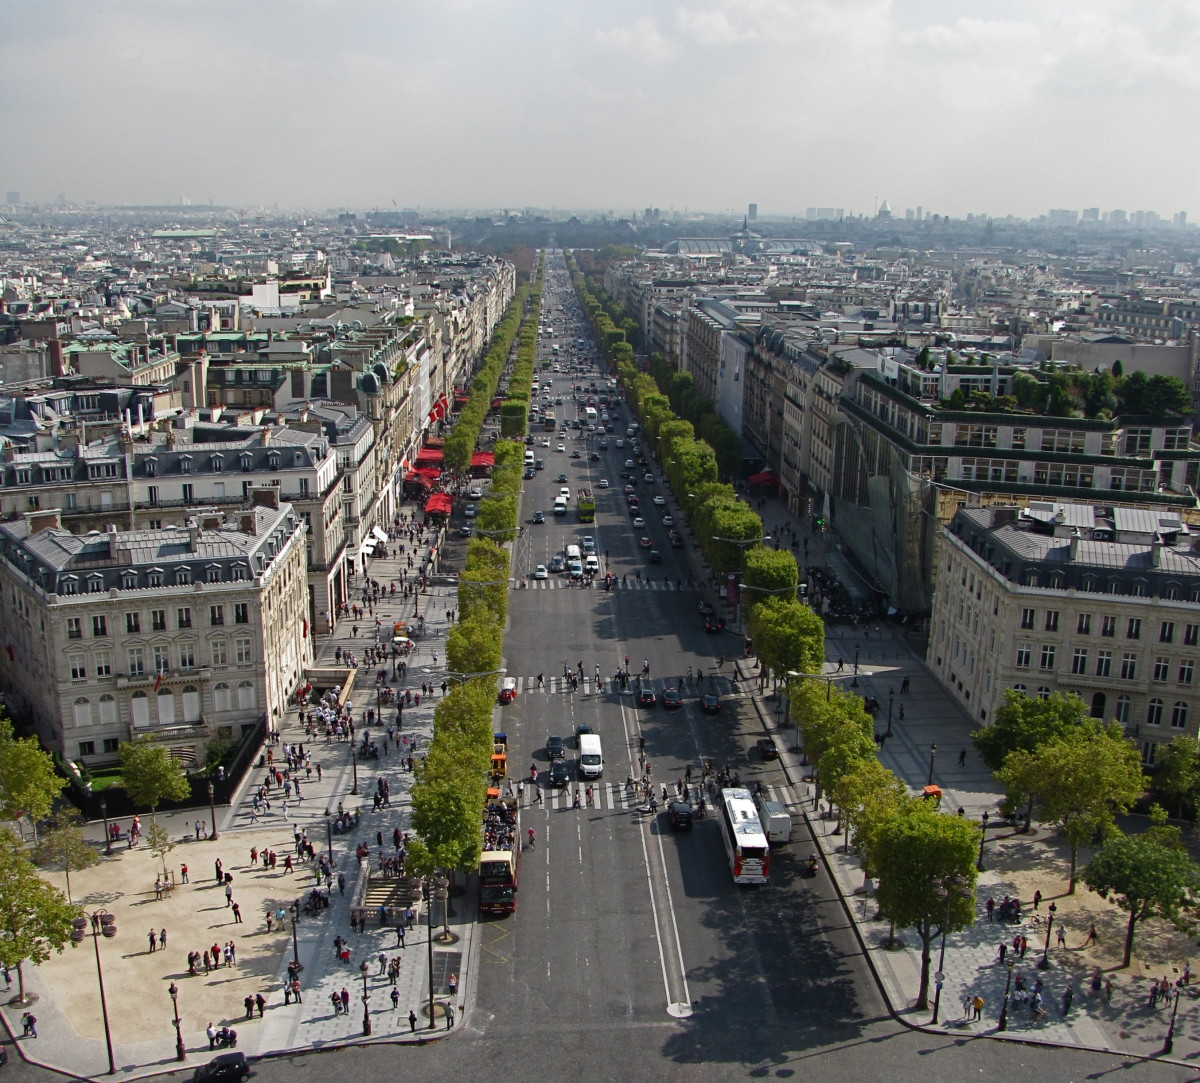 Champs-Elysees from top of Arc de Triomphe